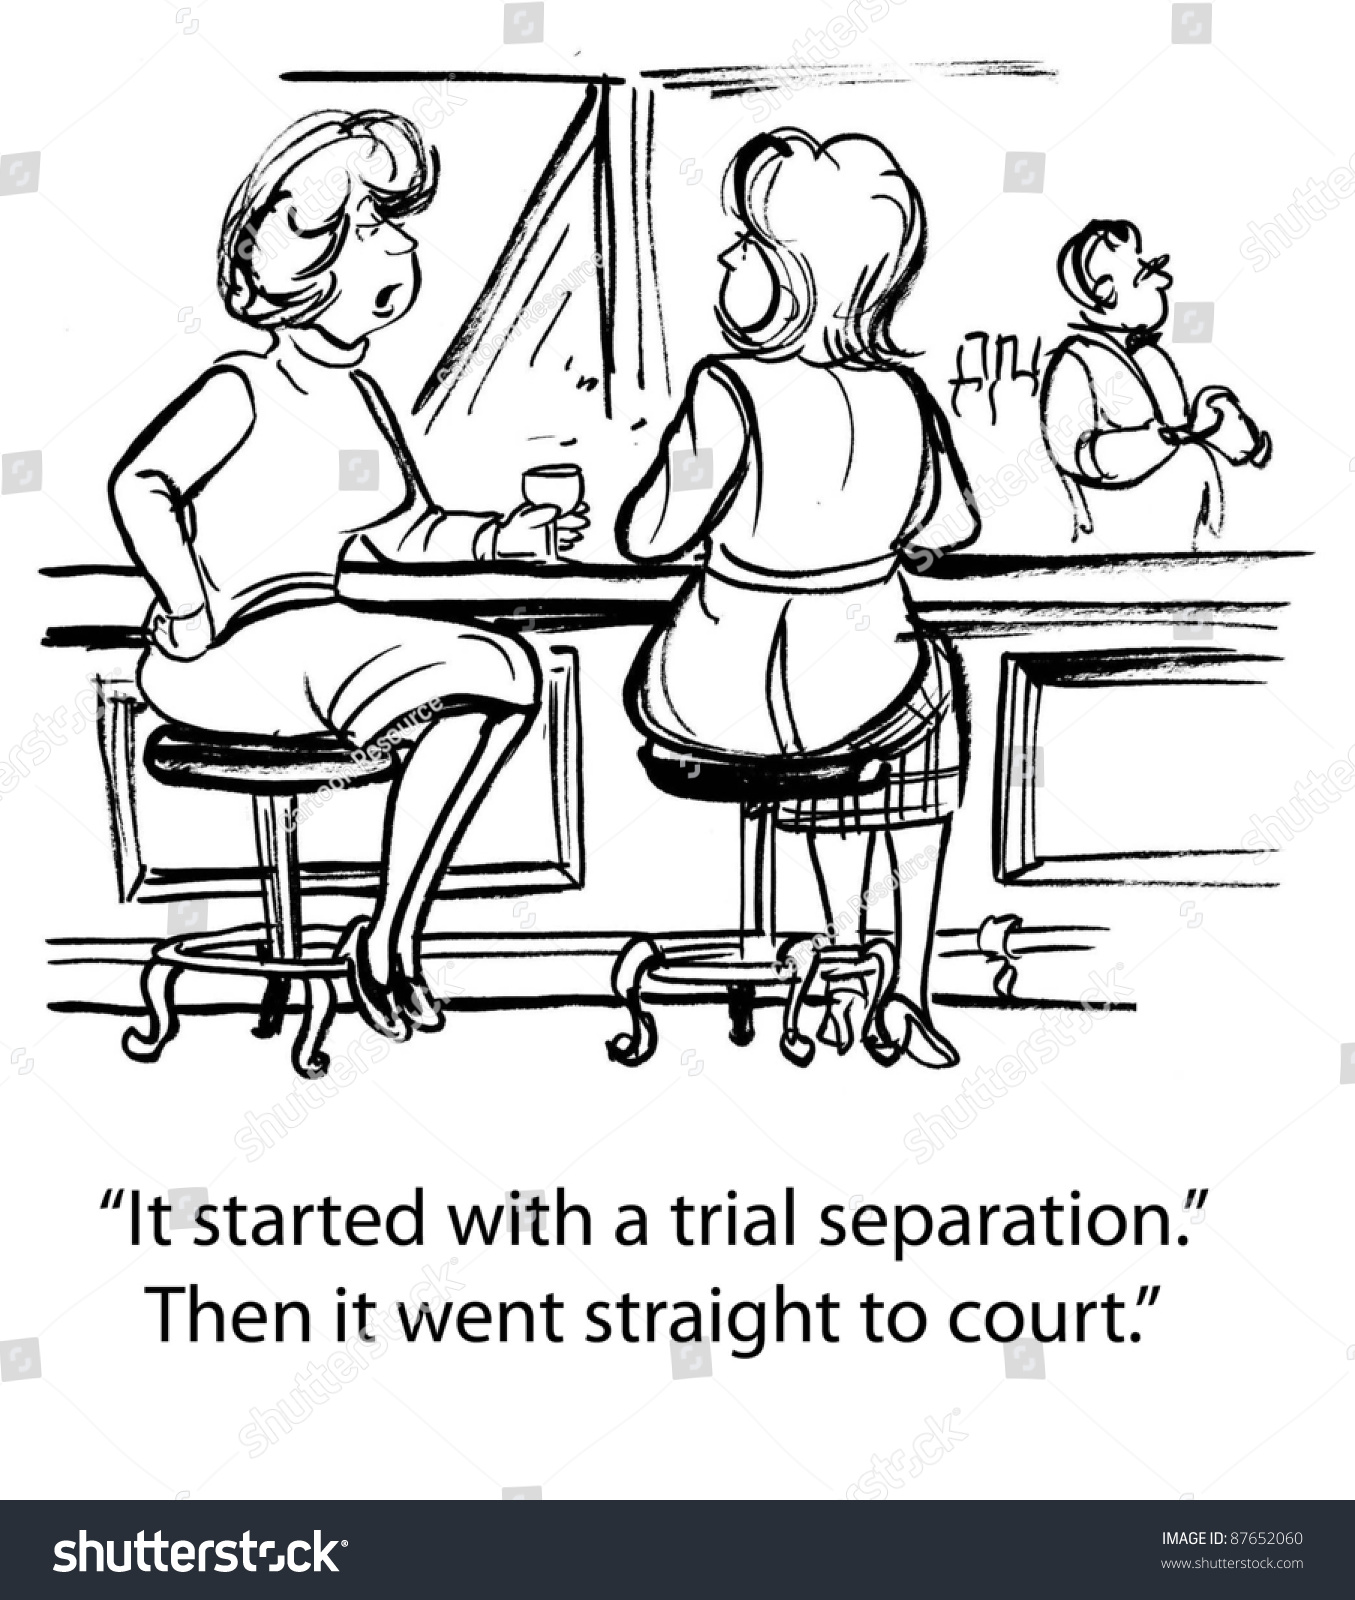 Trial seperation